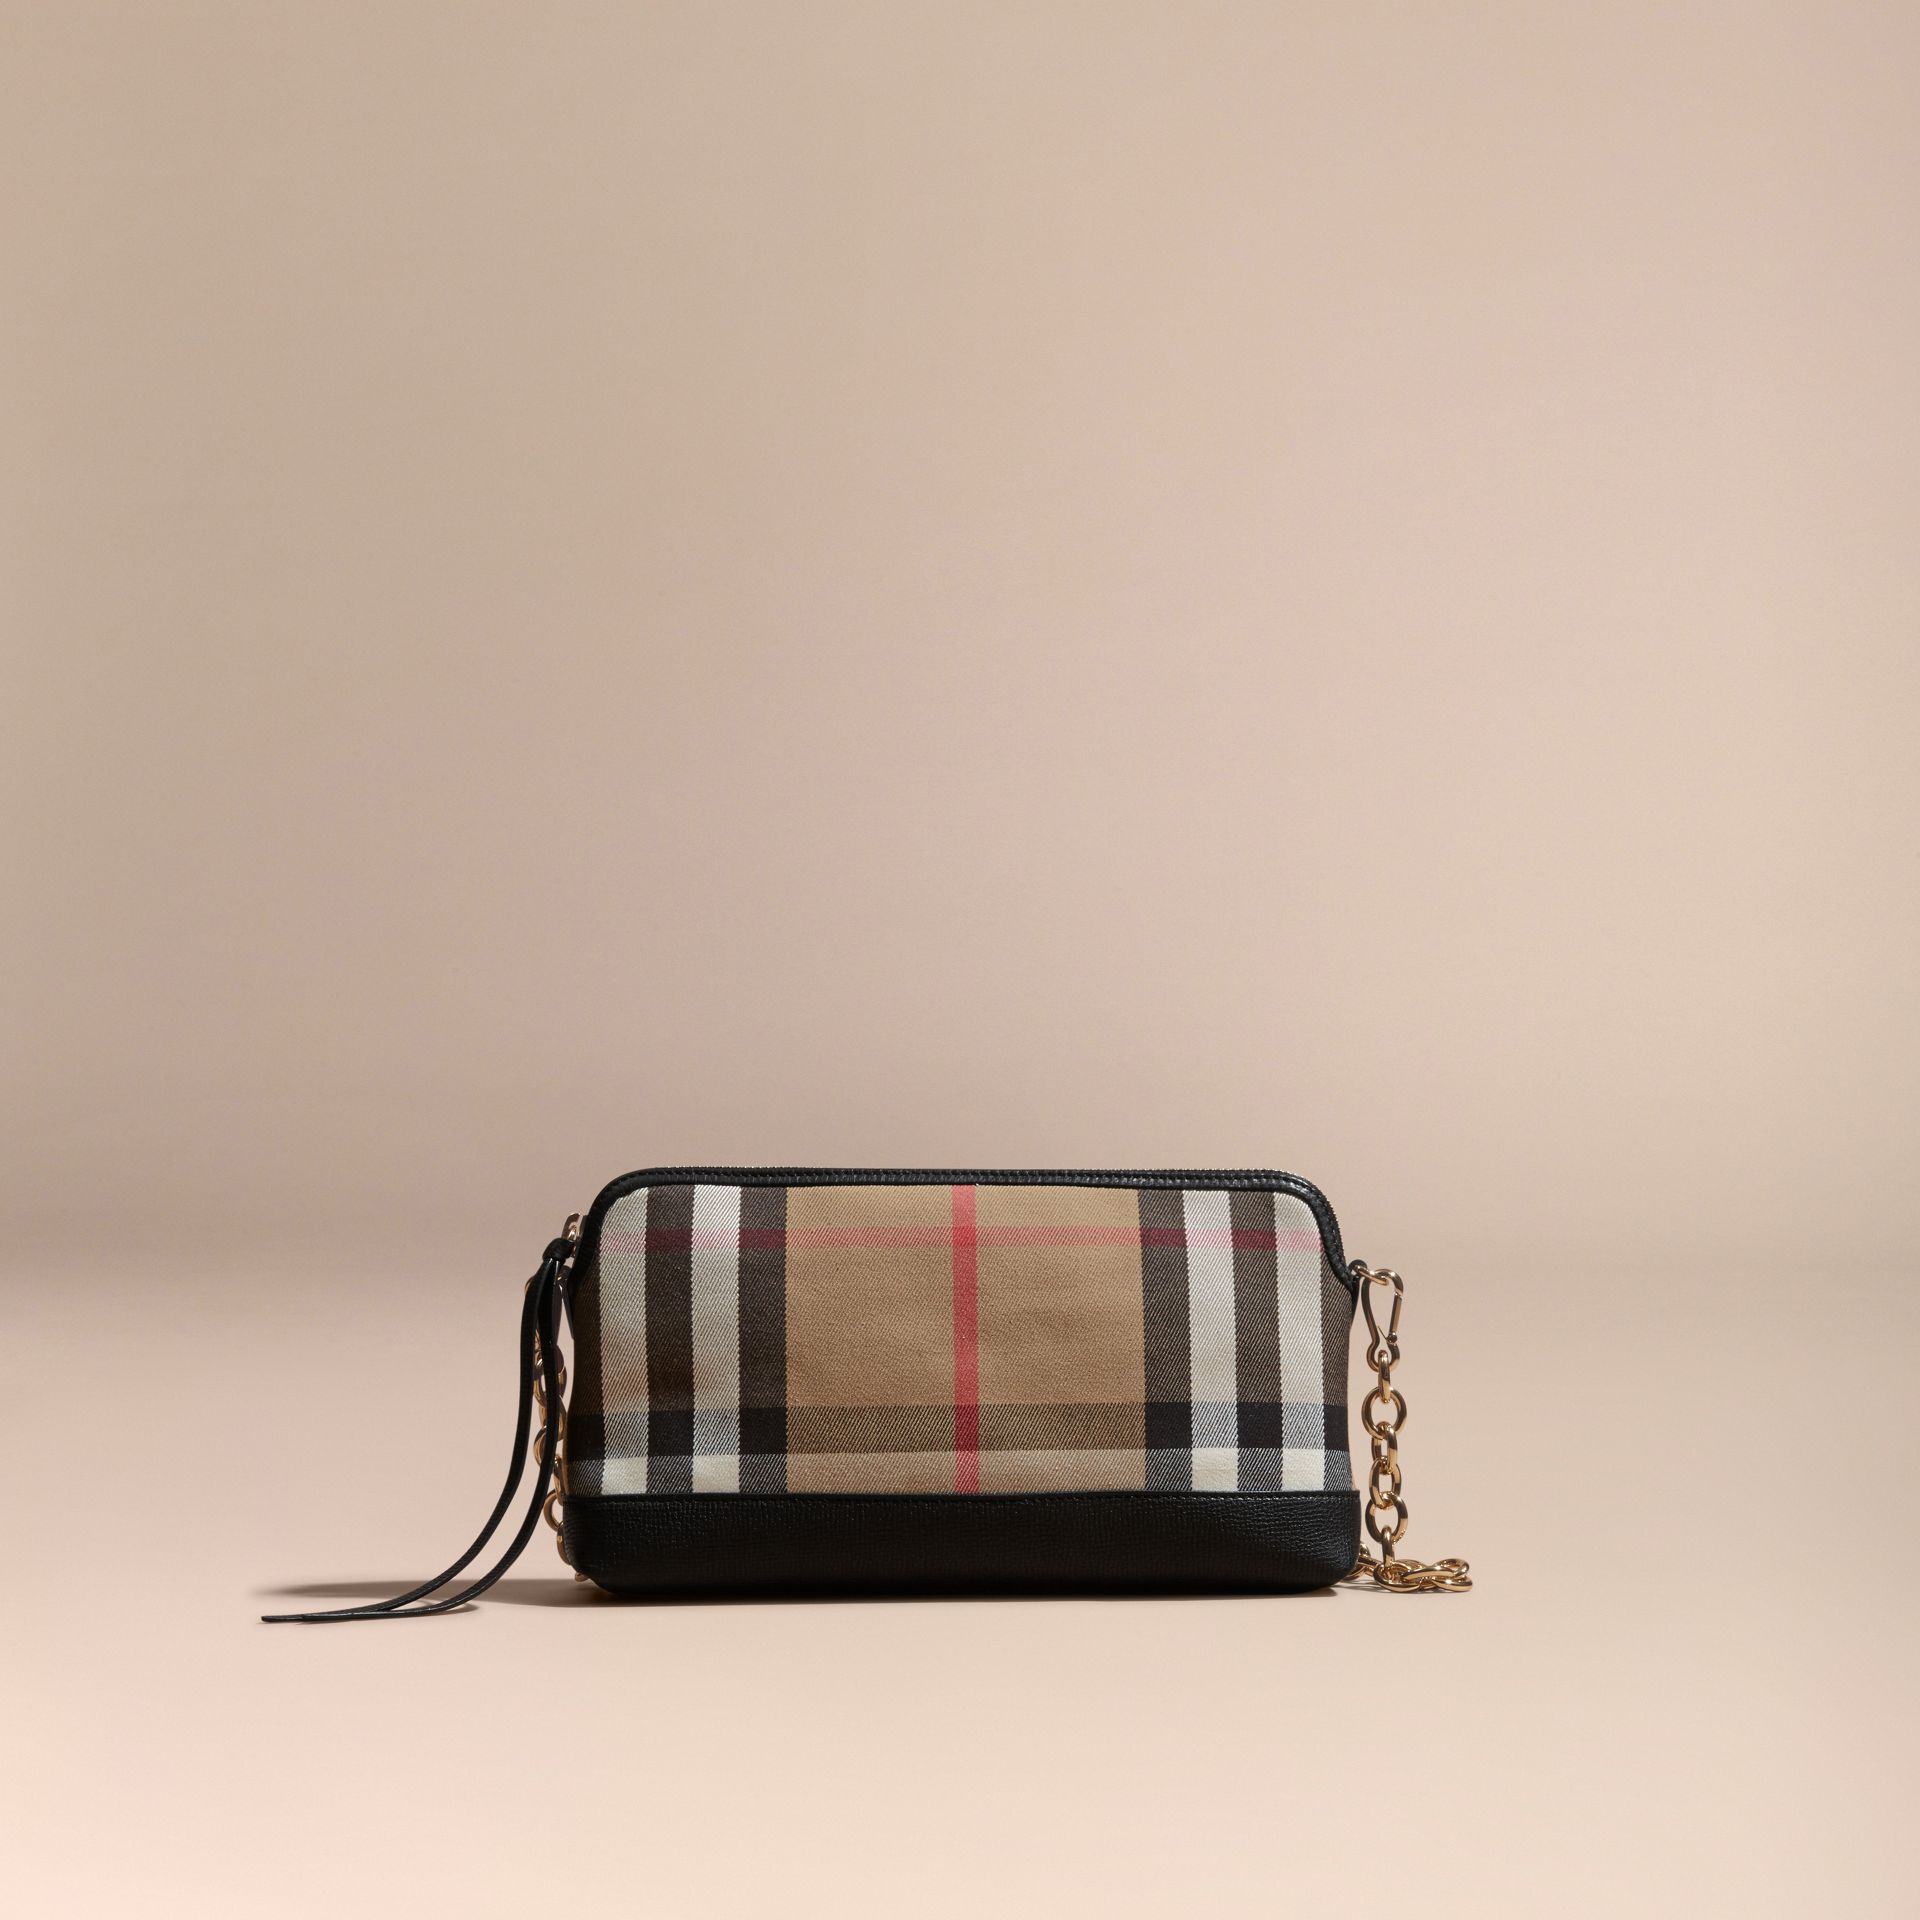 House Check and Leather Clutch Bag in Black - Women | Burberry - gallery image 9